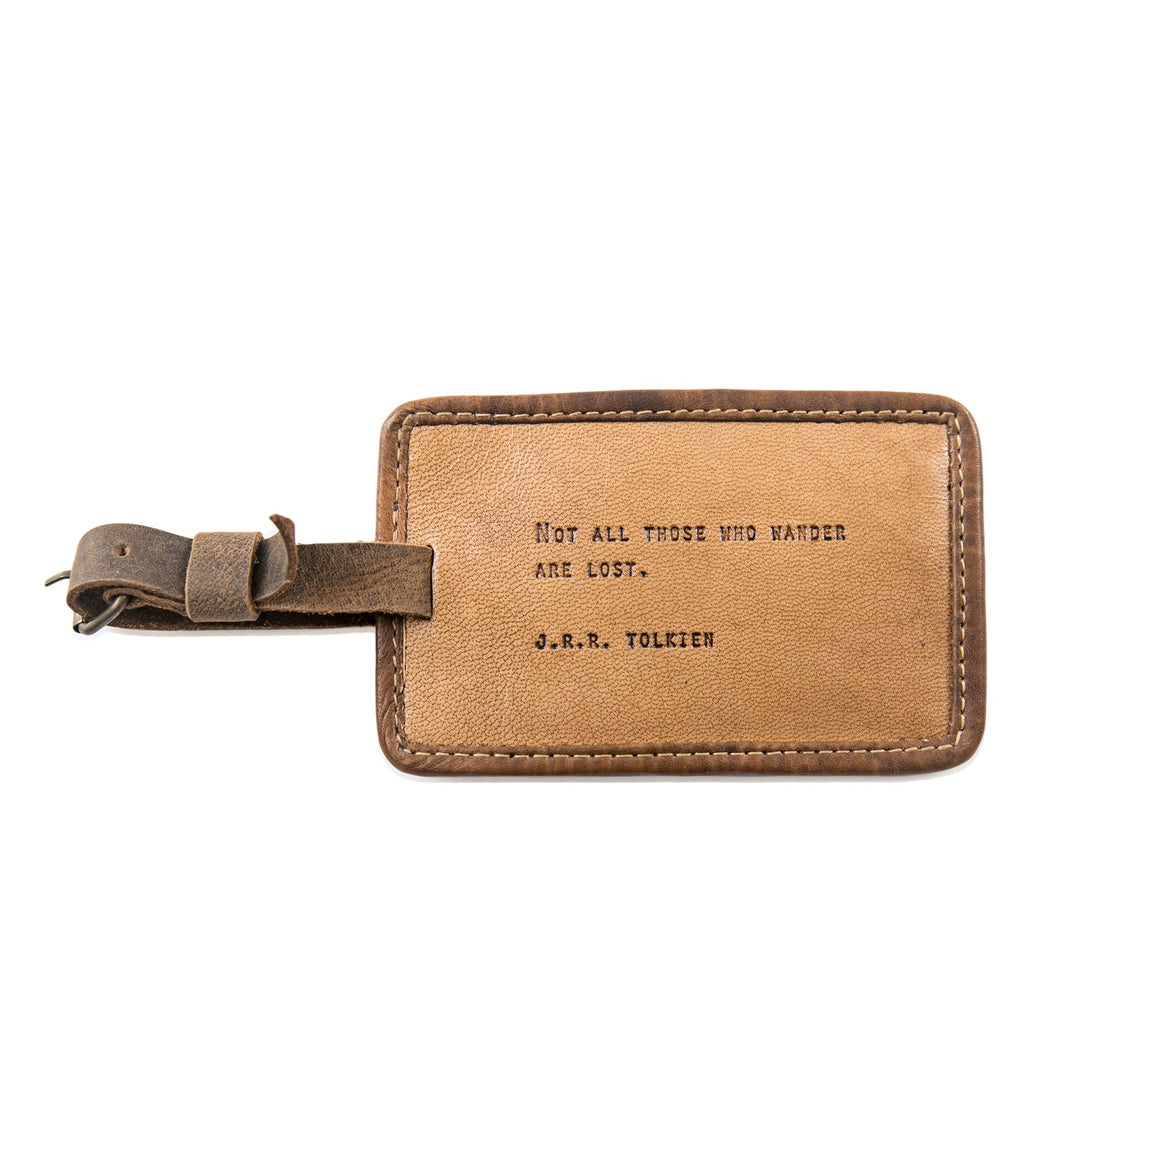 Leather Luggage Tag - J.R.R. Tolkien